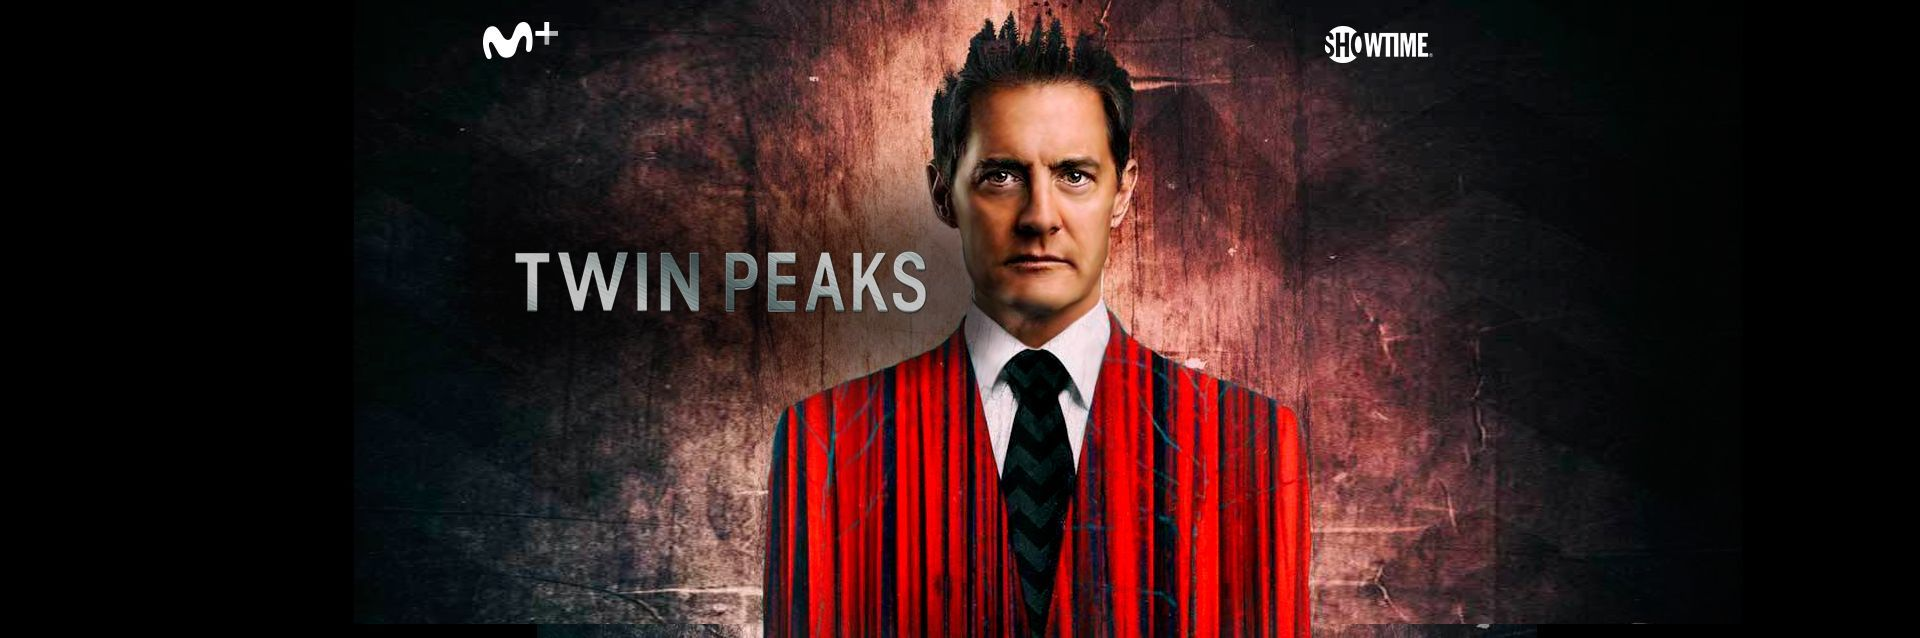 TODO TWIN PEAKS EN MOVISTAR PLUS, incluida la fundamental 'Fuego Camina Conmigo'